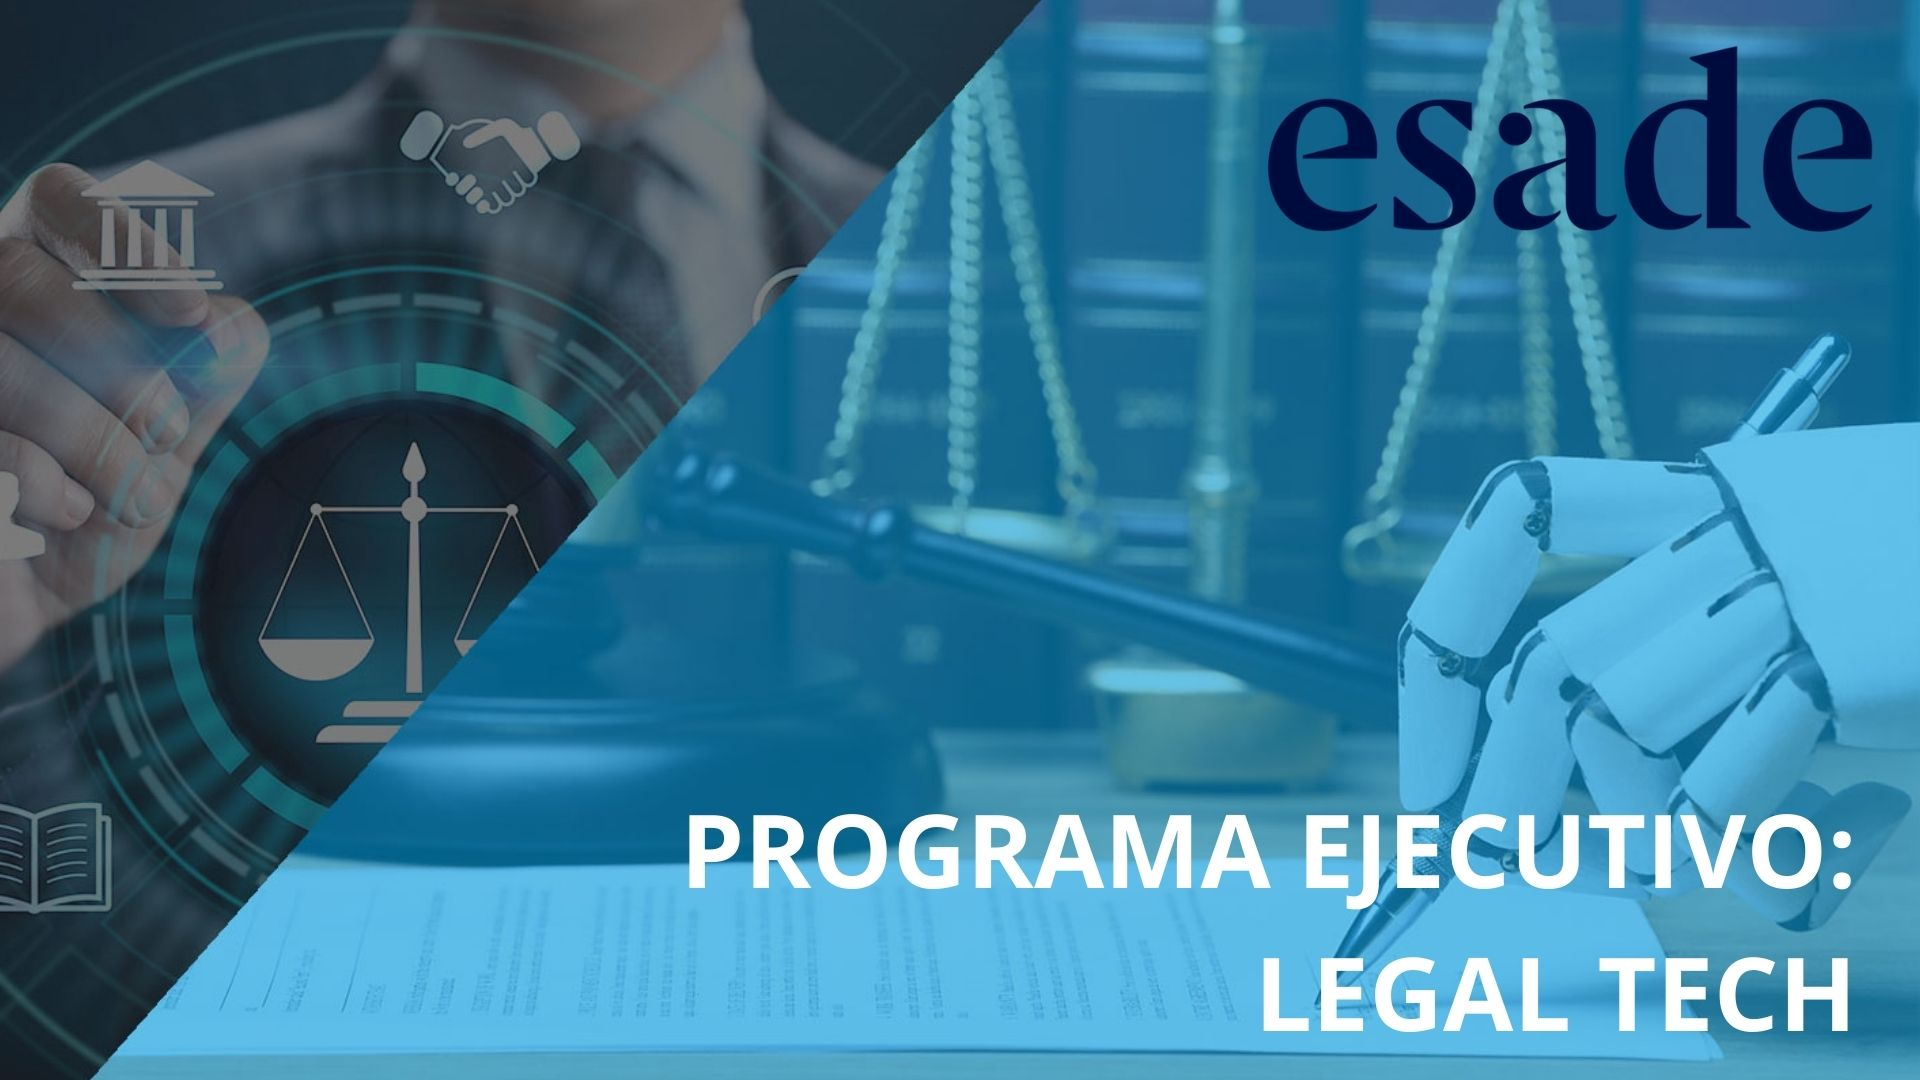 LEGAL TECH - ESADE - Cámara Comercio Murcia